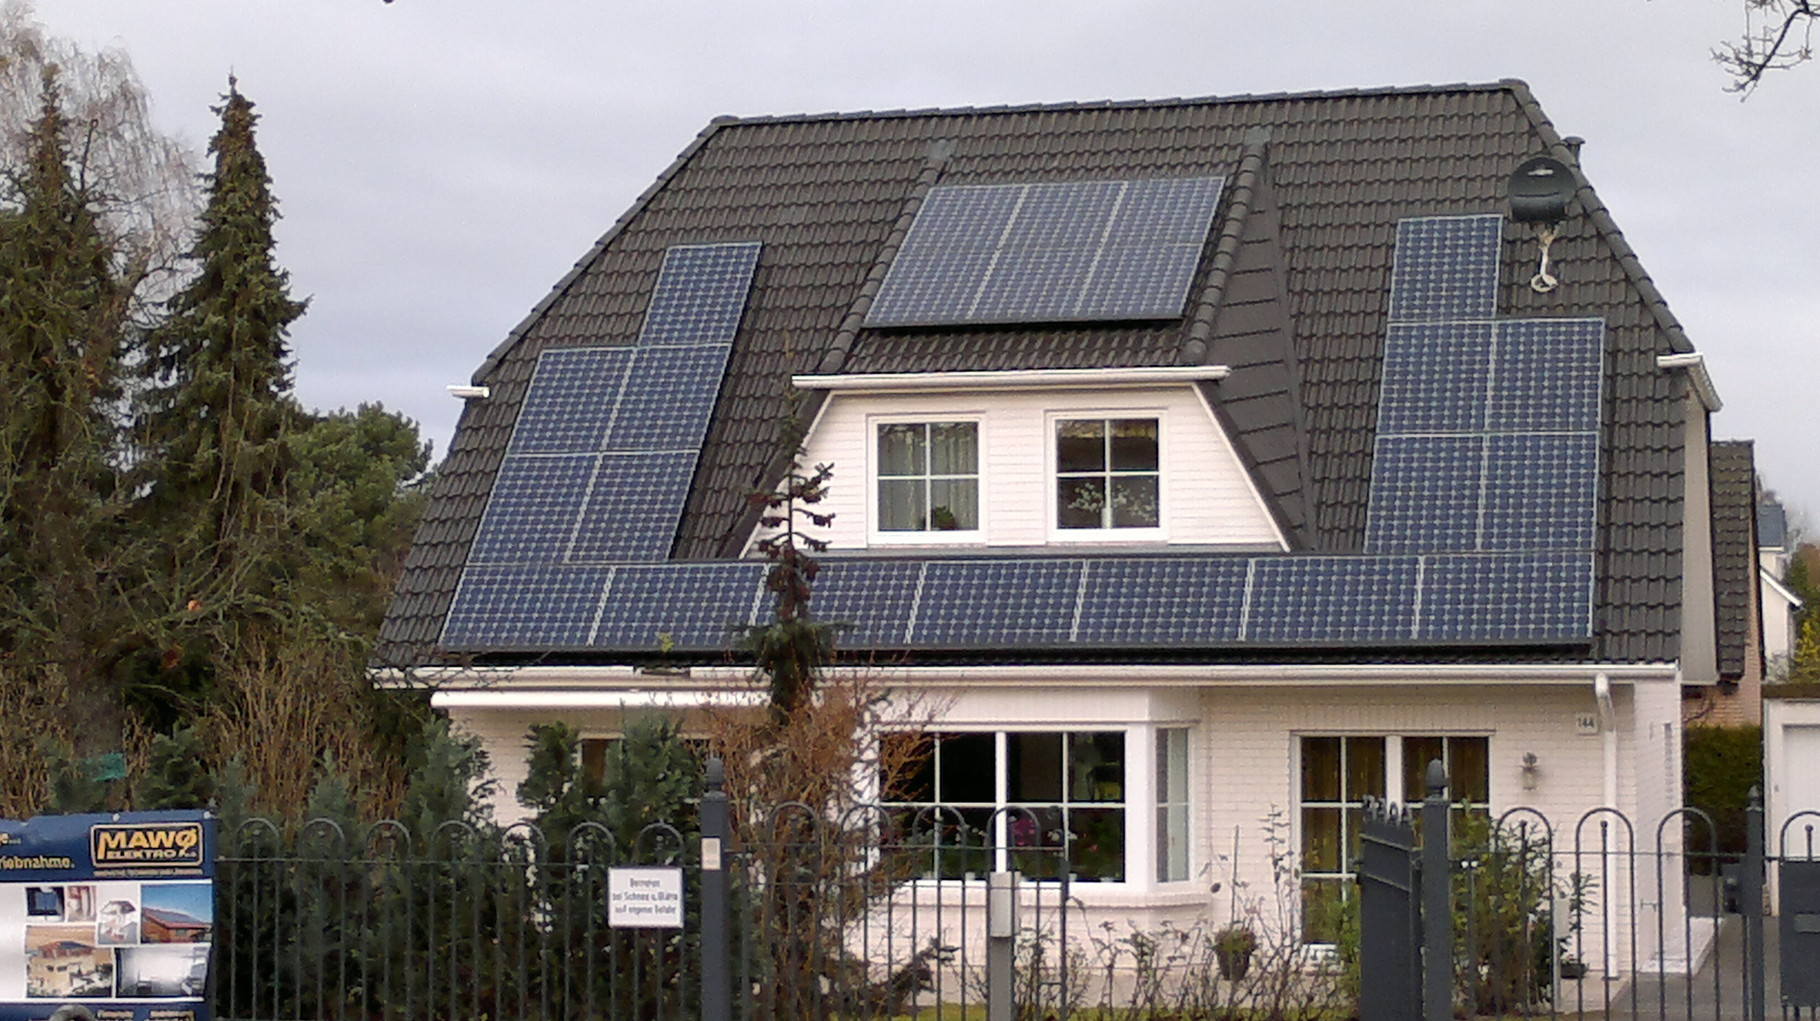 7,659 kWp Sunpower in Berlin